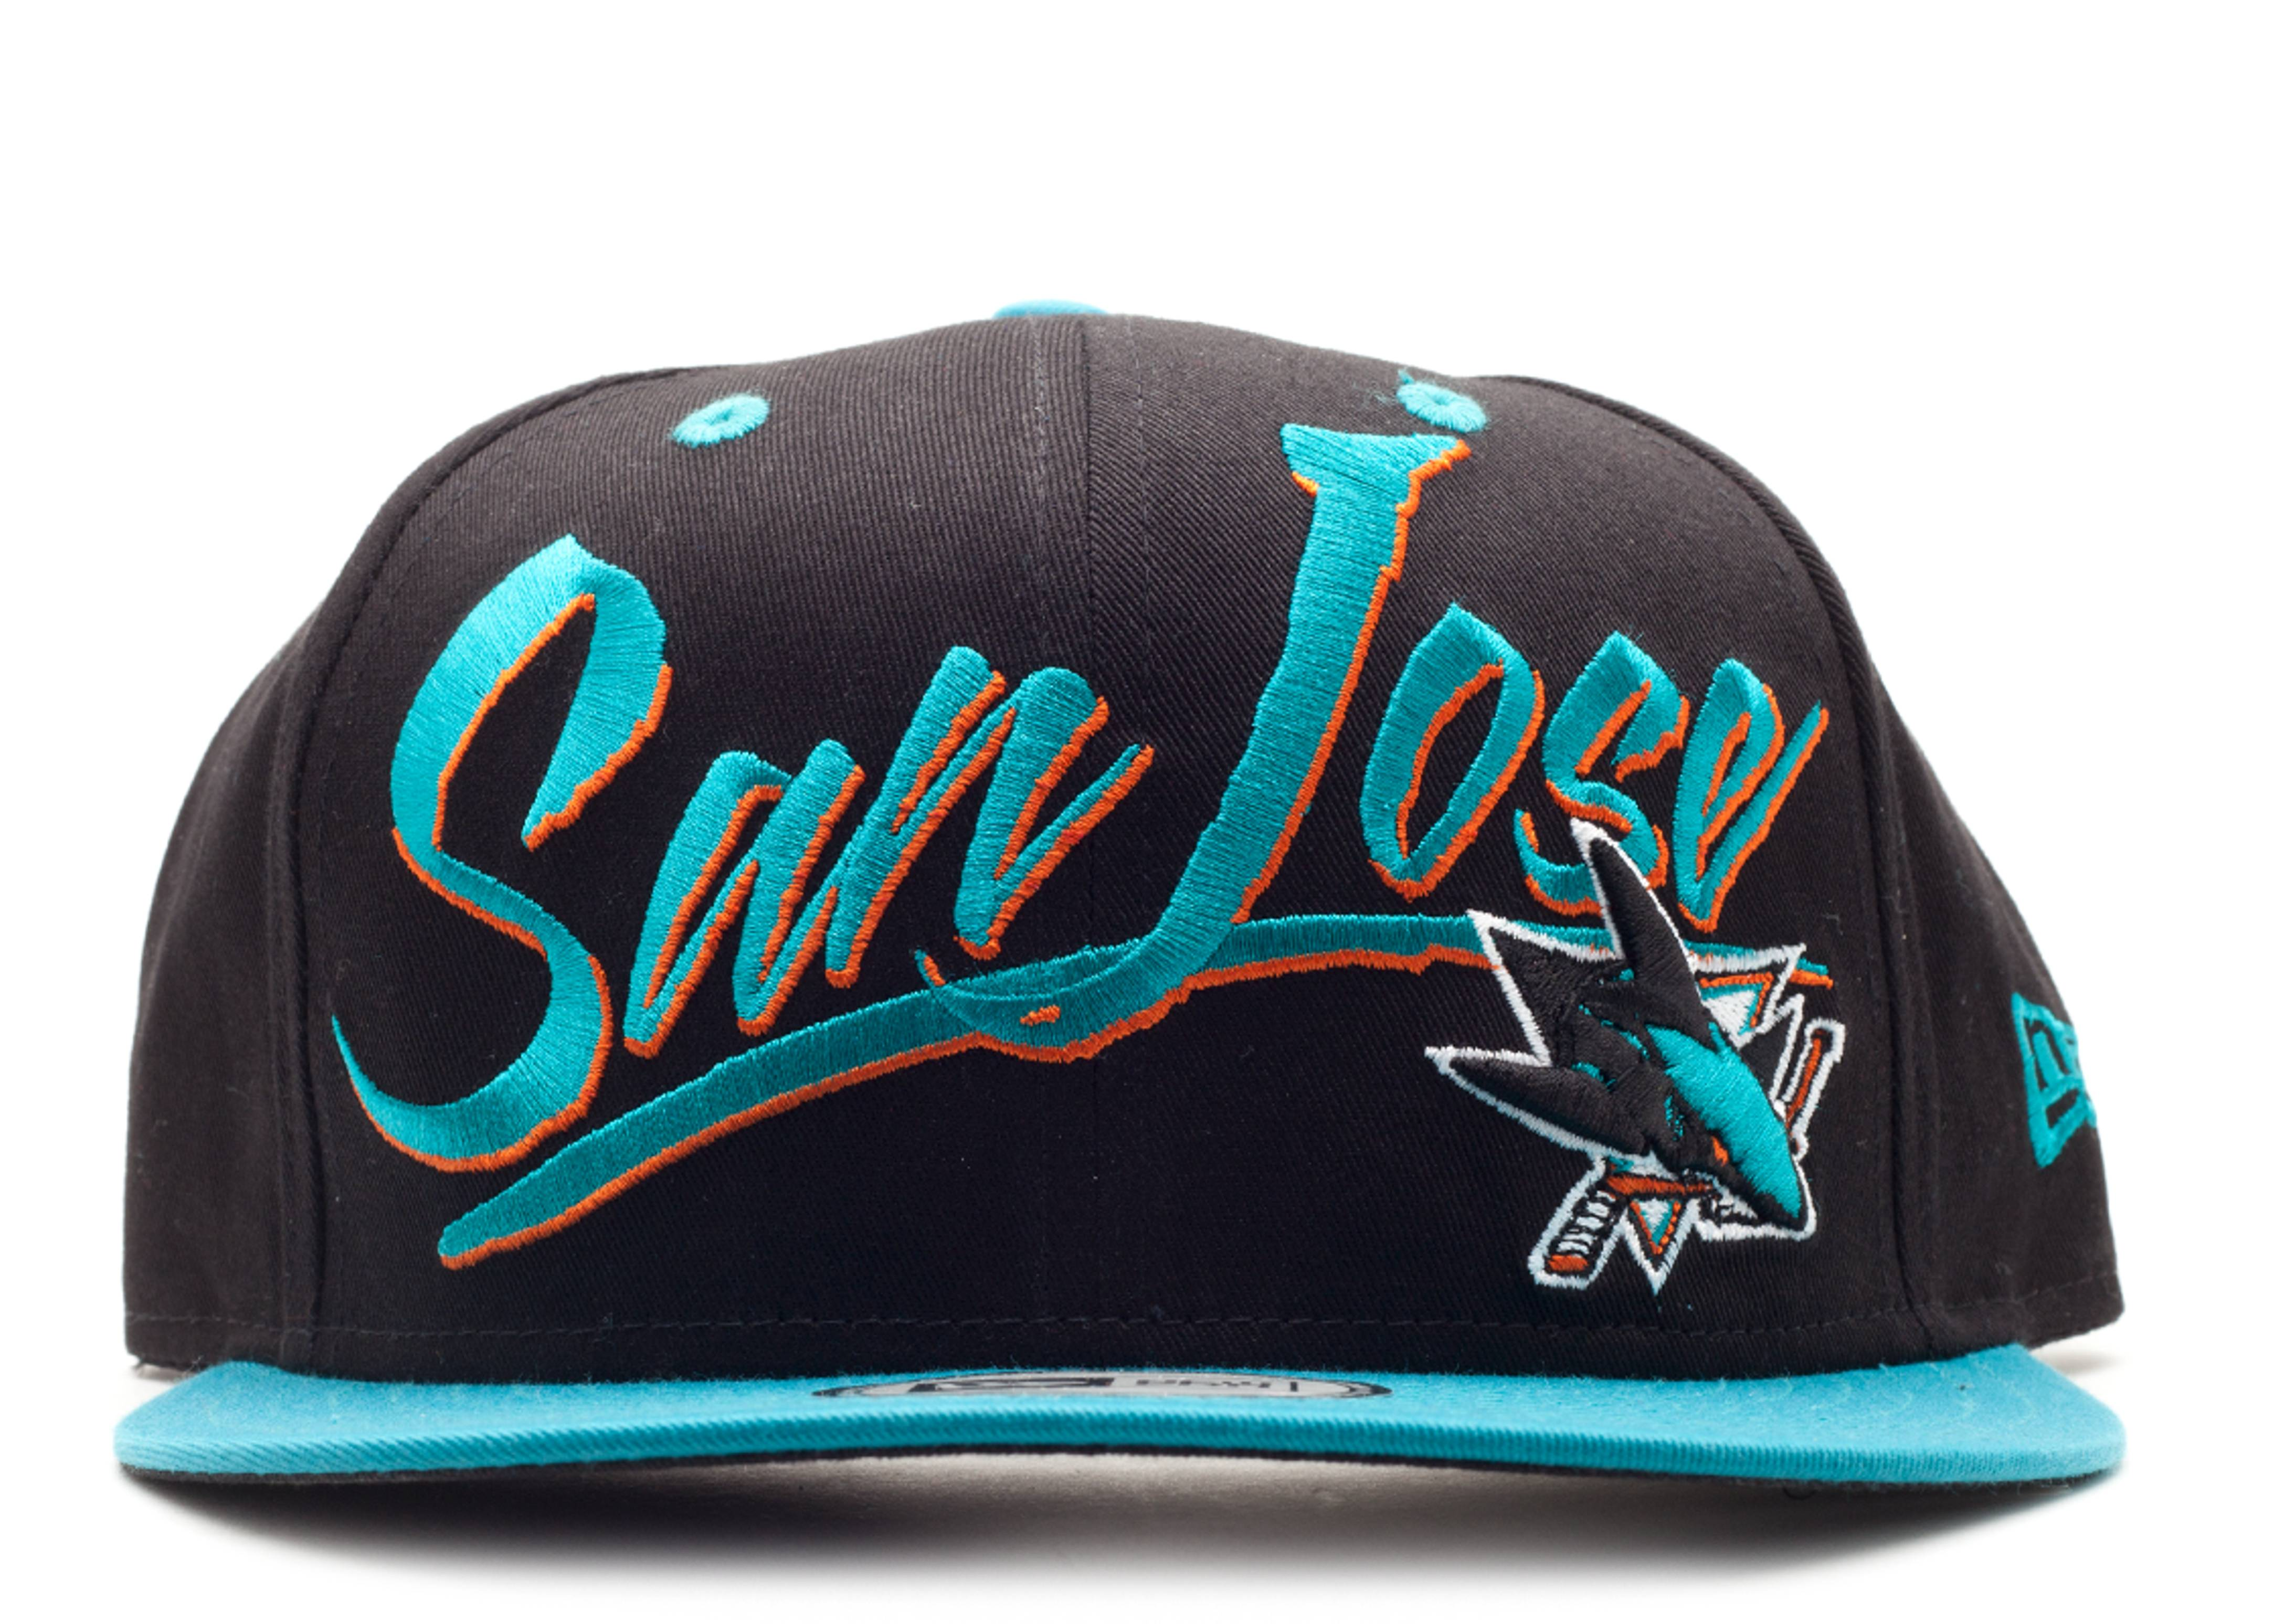 san jose sharks snap-back